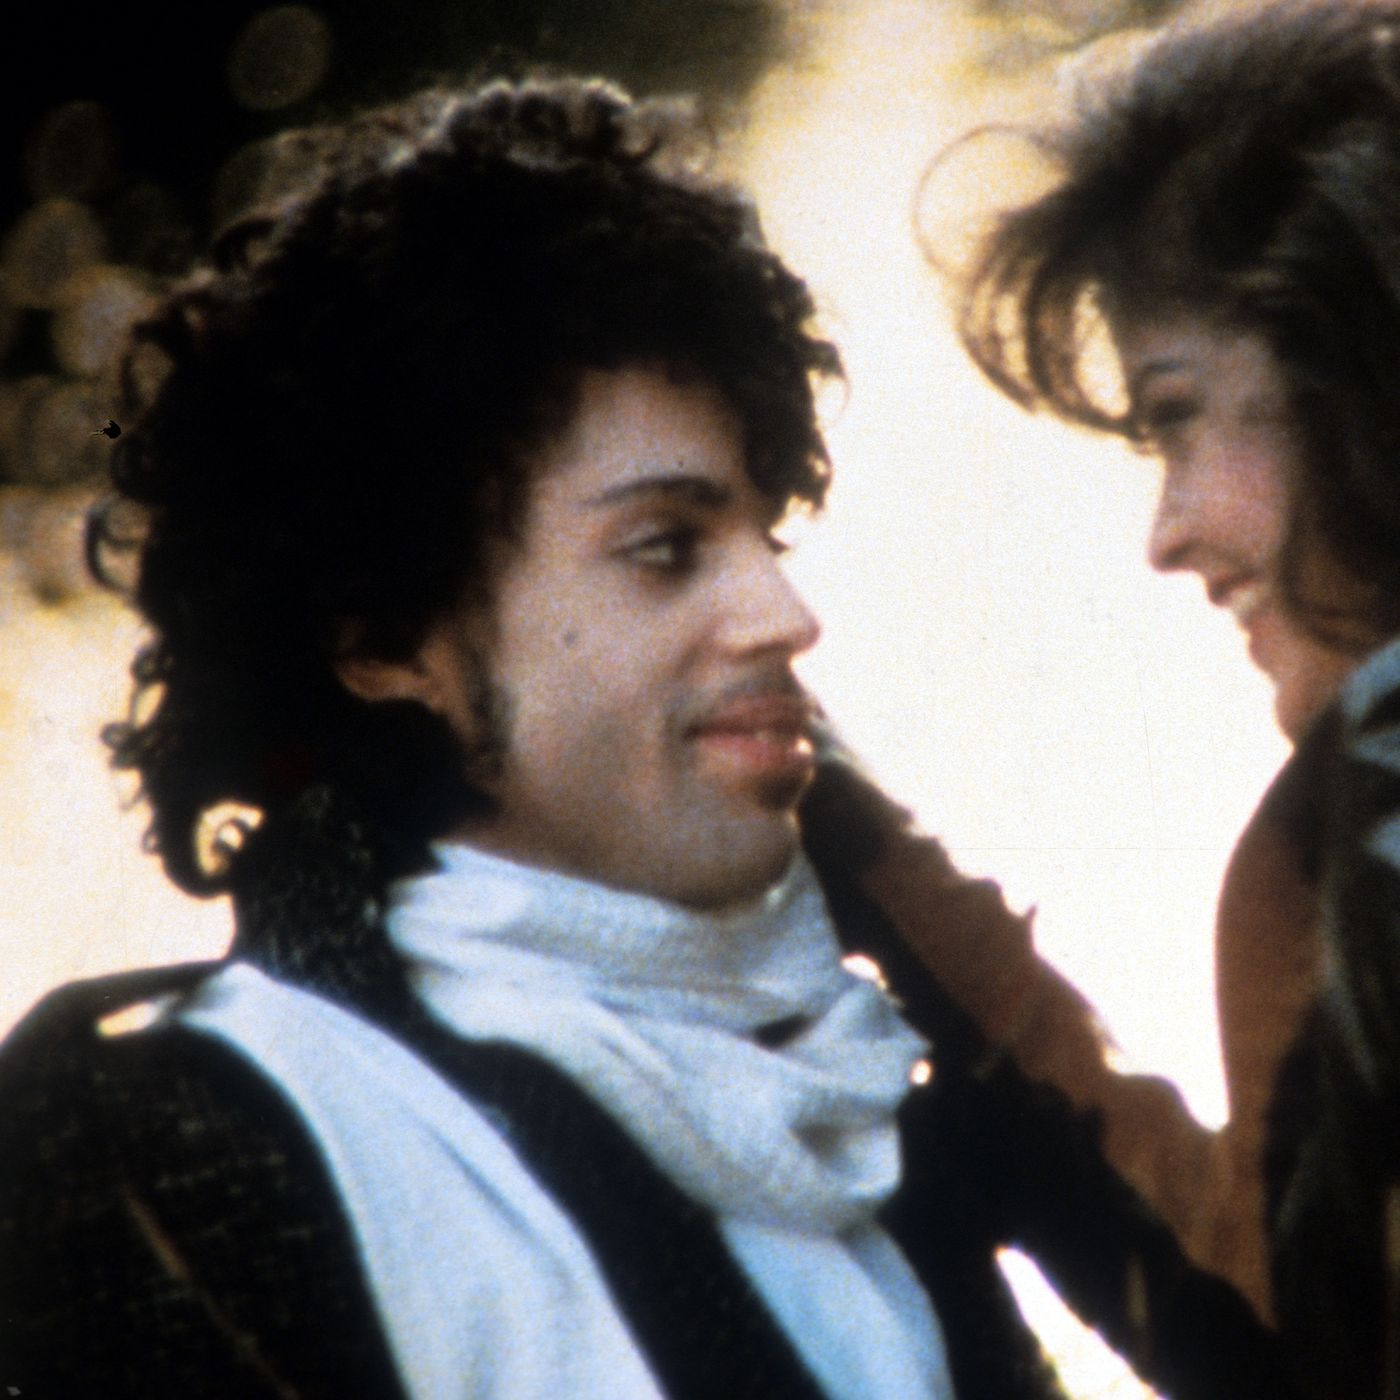 33 years after Prince debuted Purple Rain, a deluxe reissue has